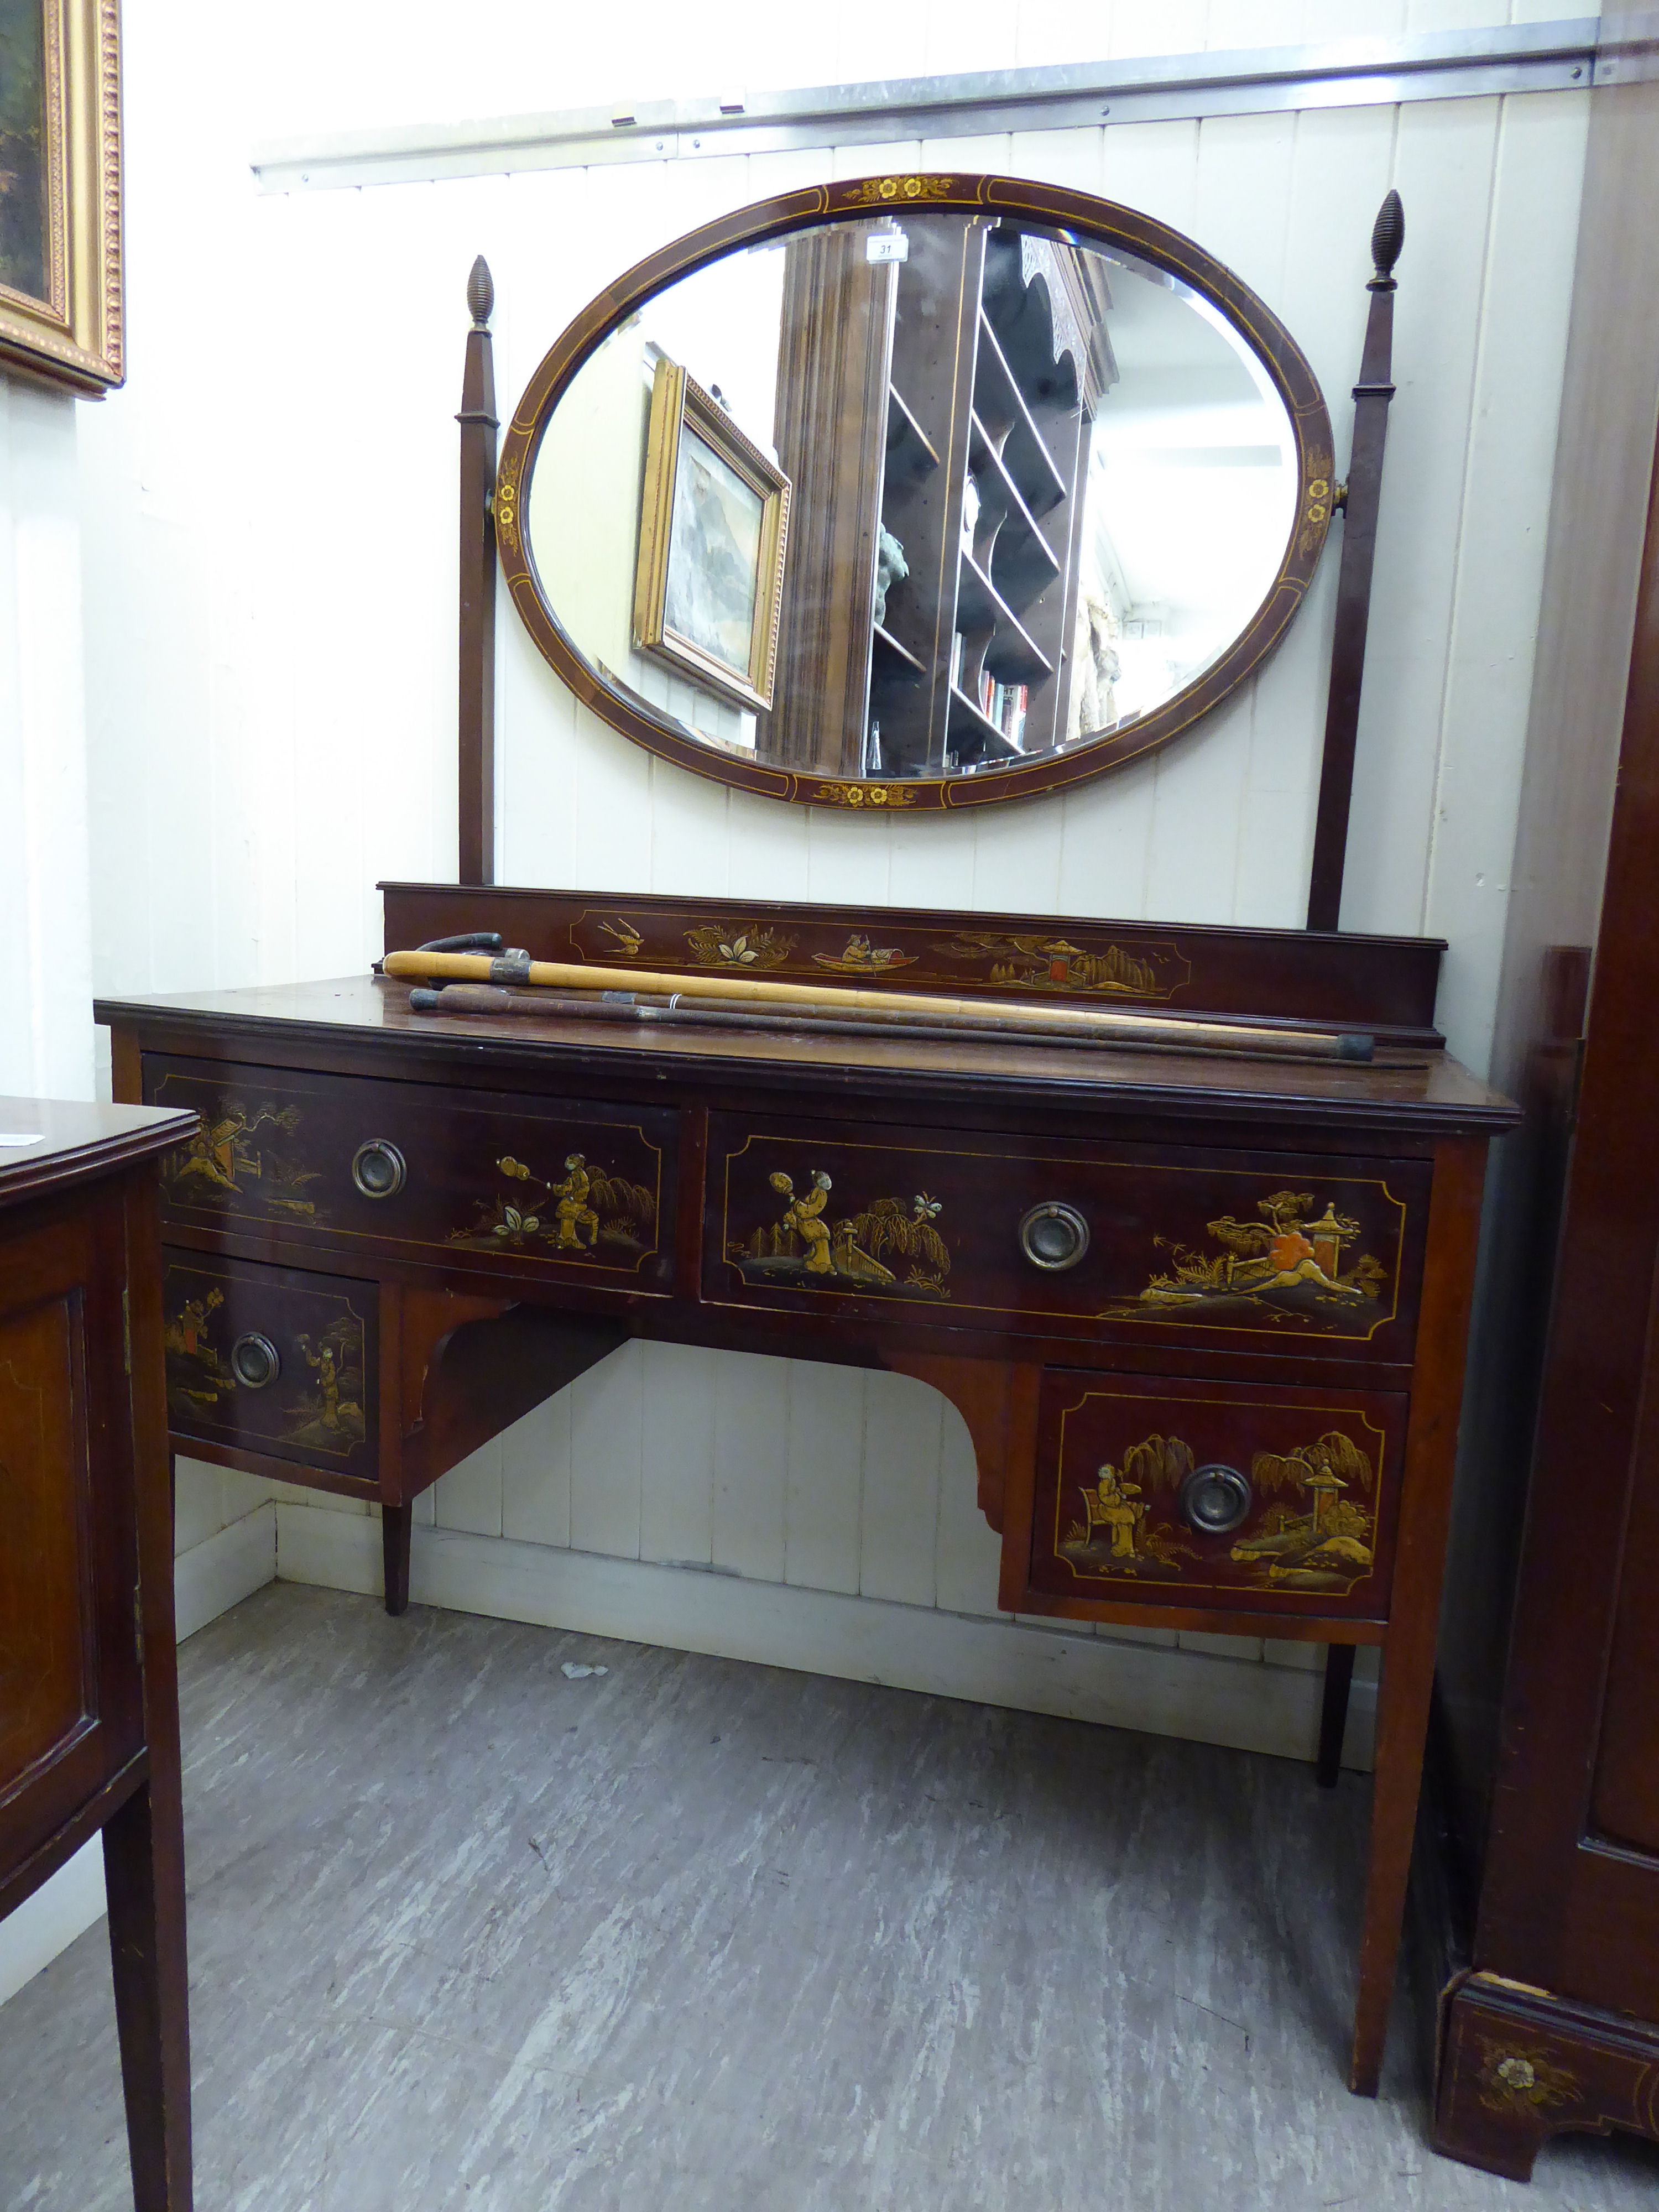 Lot 31 - A 1930s/50s mahogany and gilded four drawer kneehole dressing table,